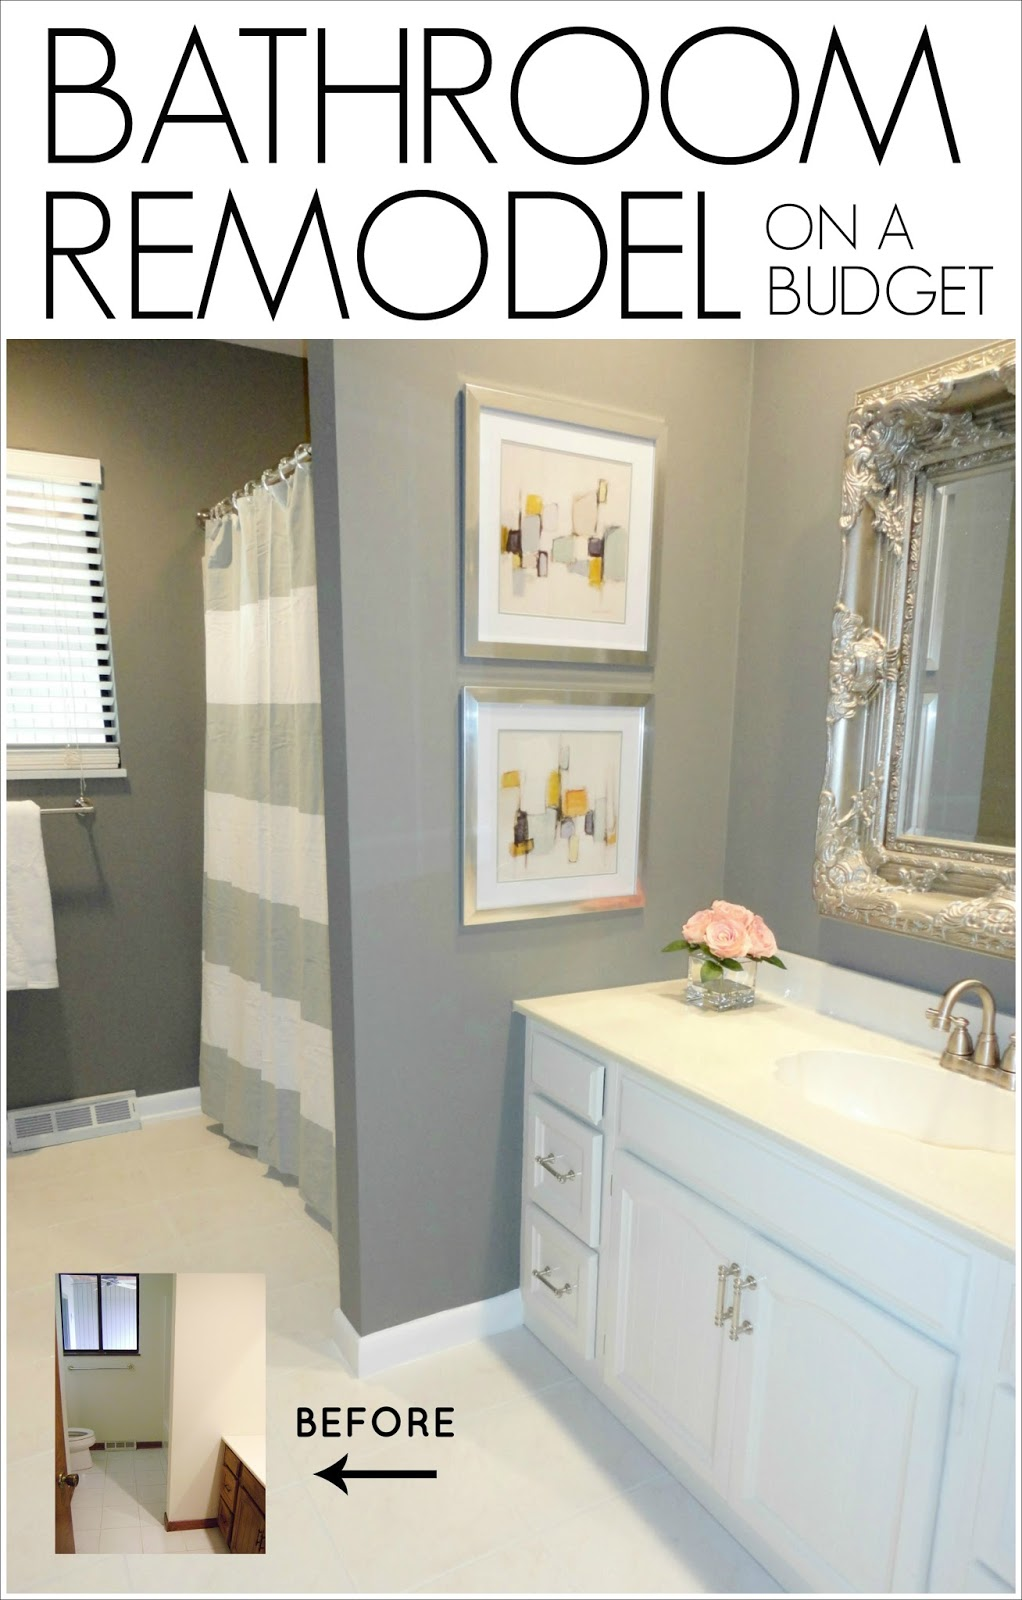 municipalities require bathroom remodel on a budget feel